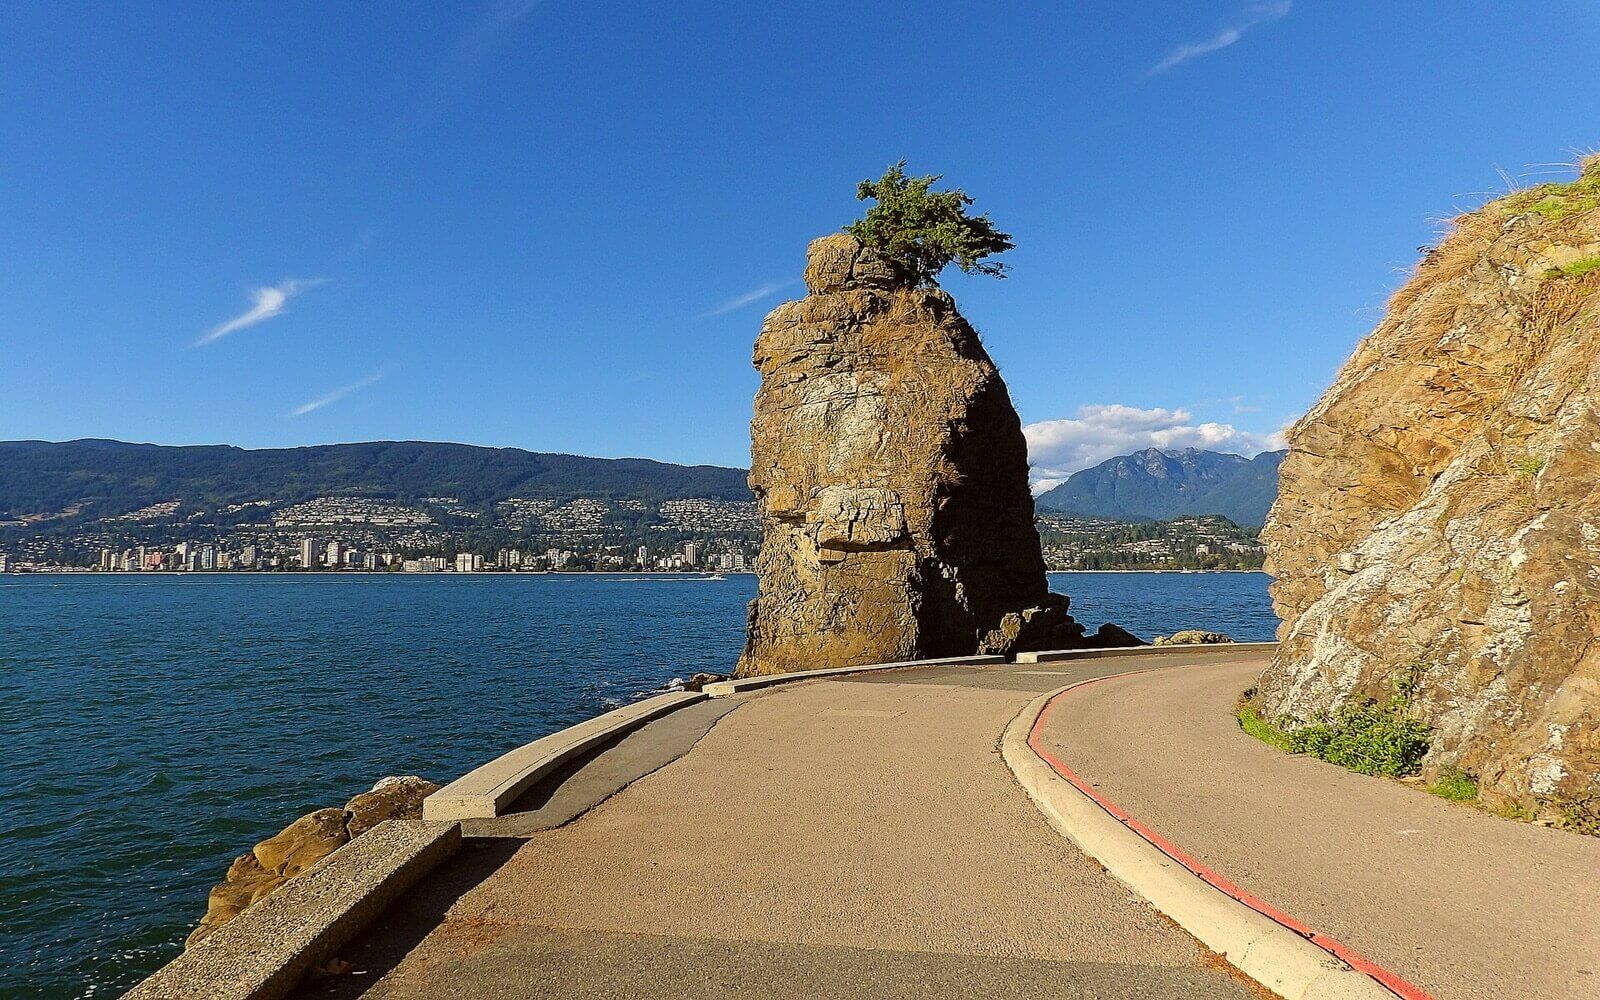 The seawall passes Siwash Rock